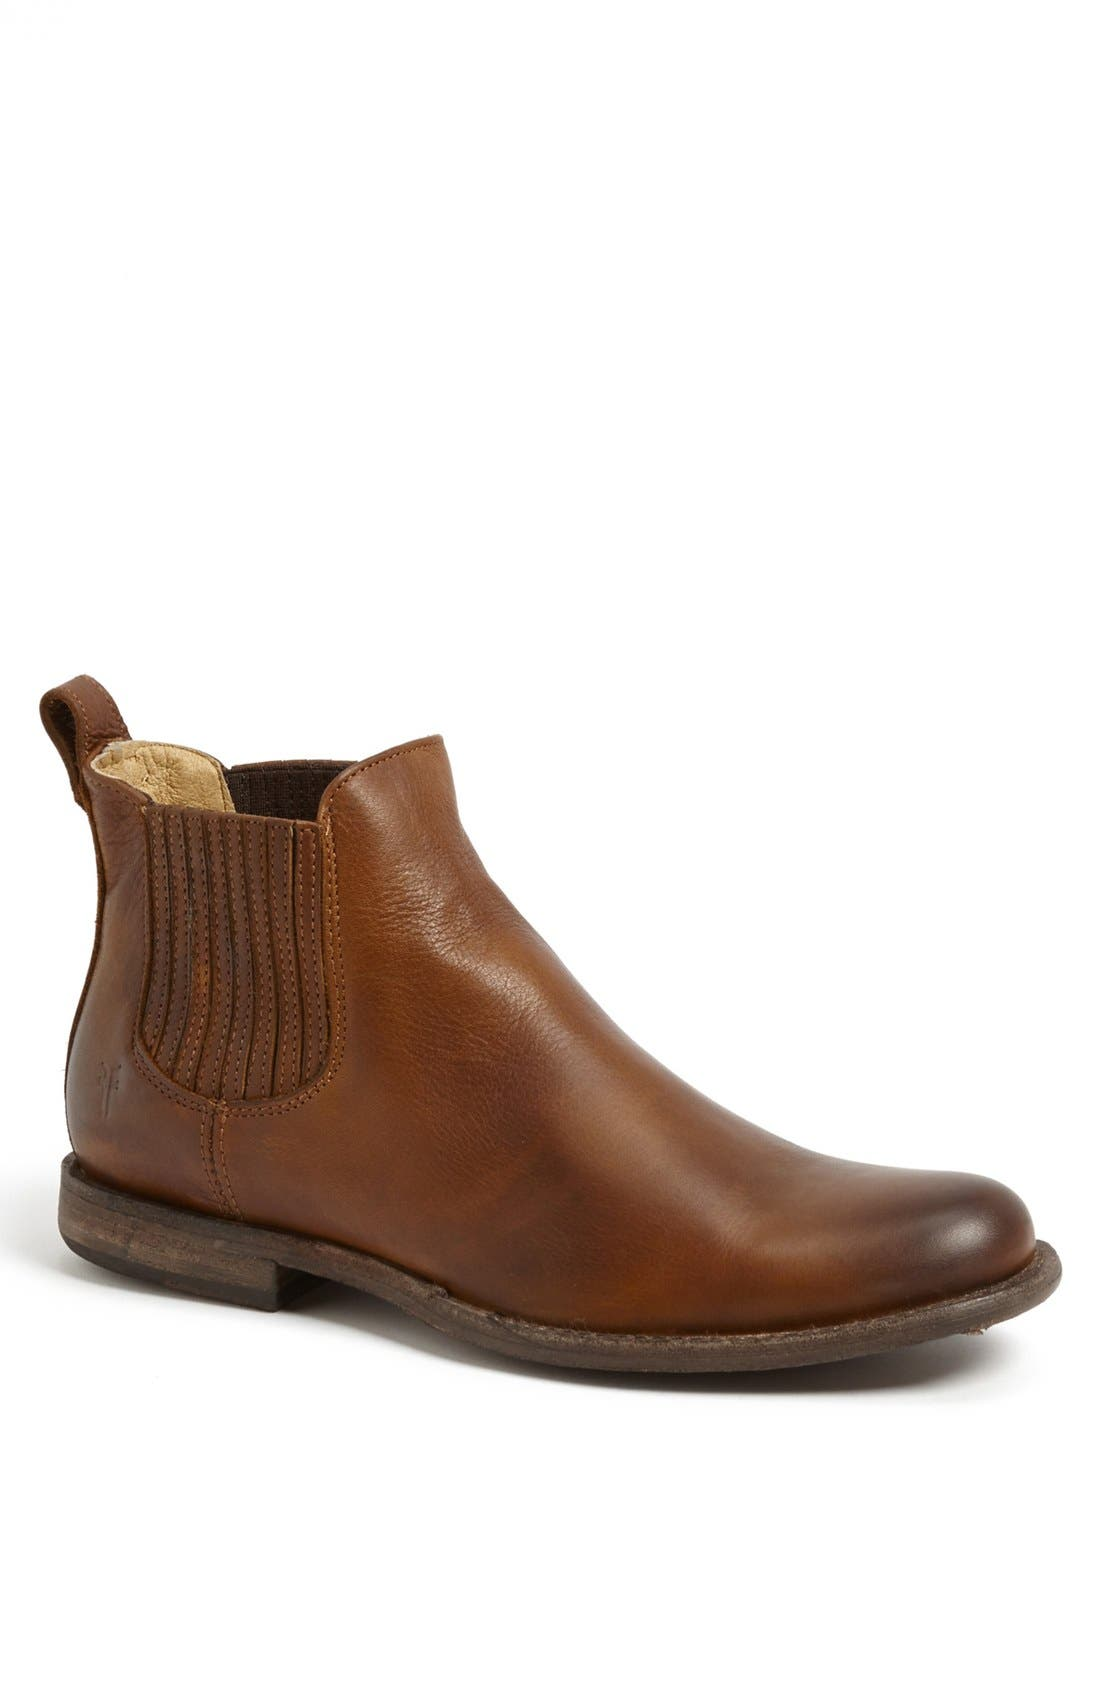 Alternate Image 1 Selected - Frye 'Phillip' Chelsea Boot